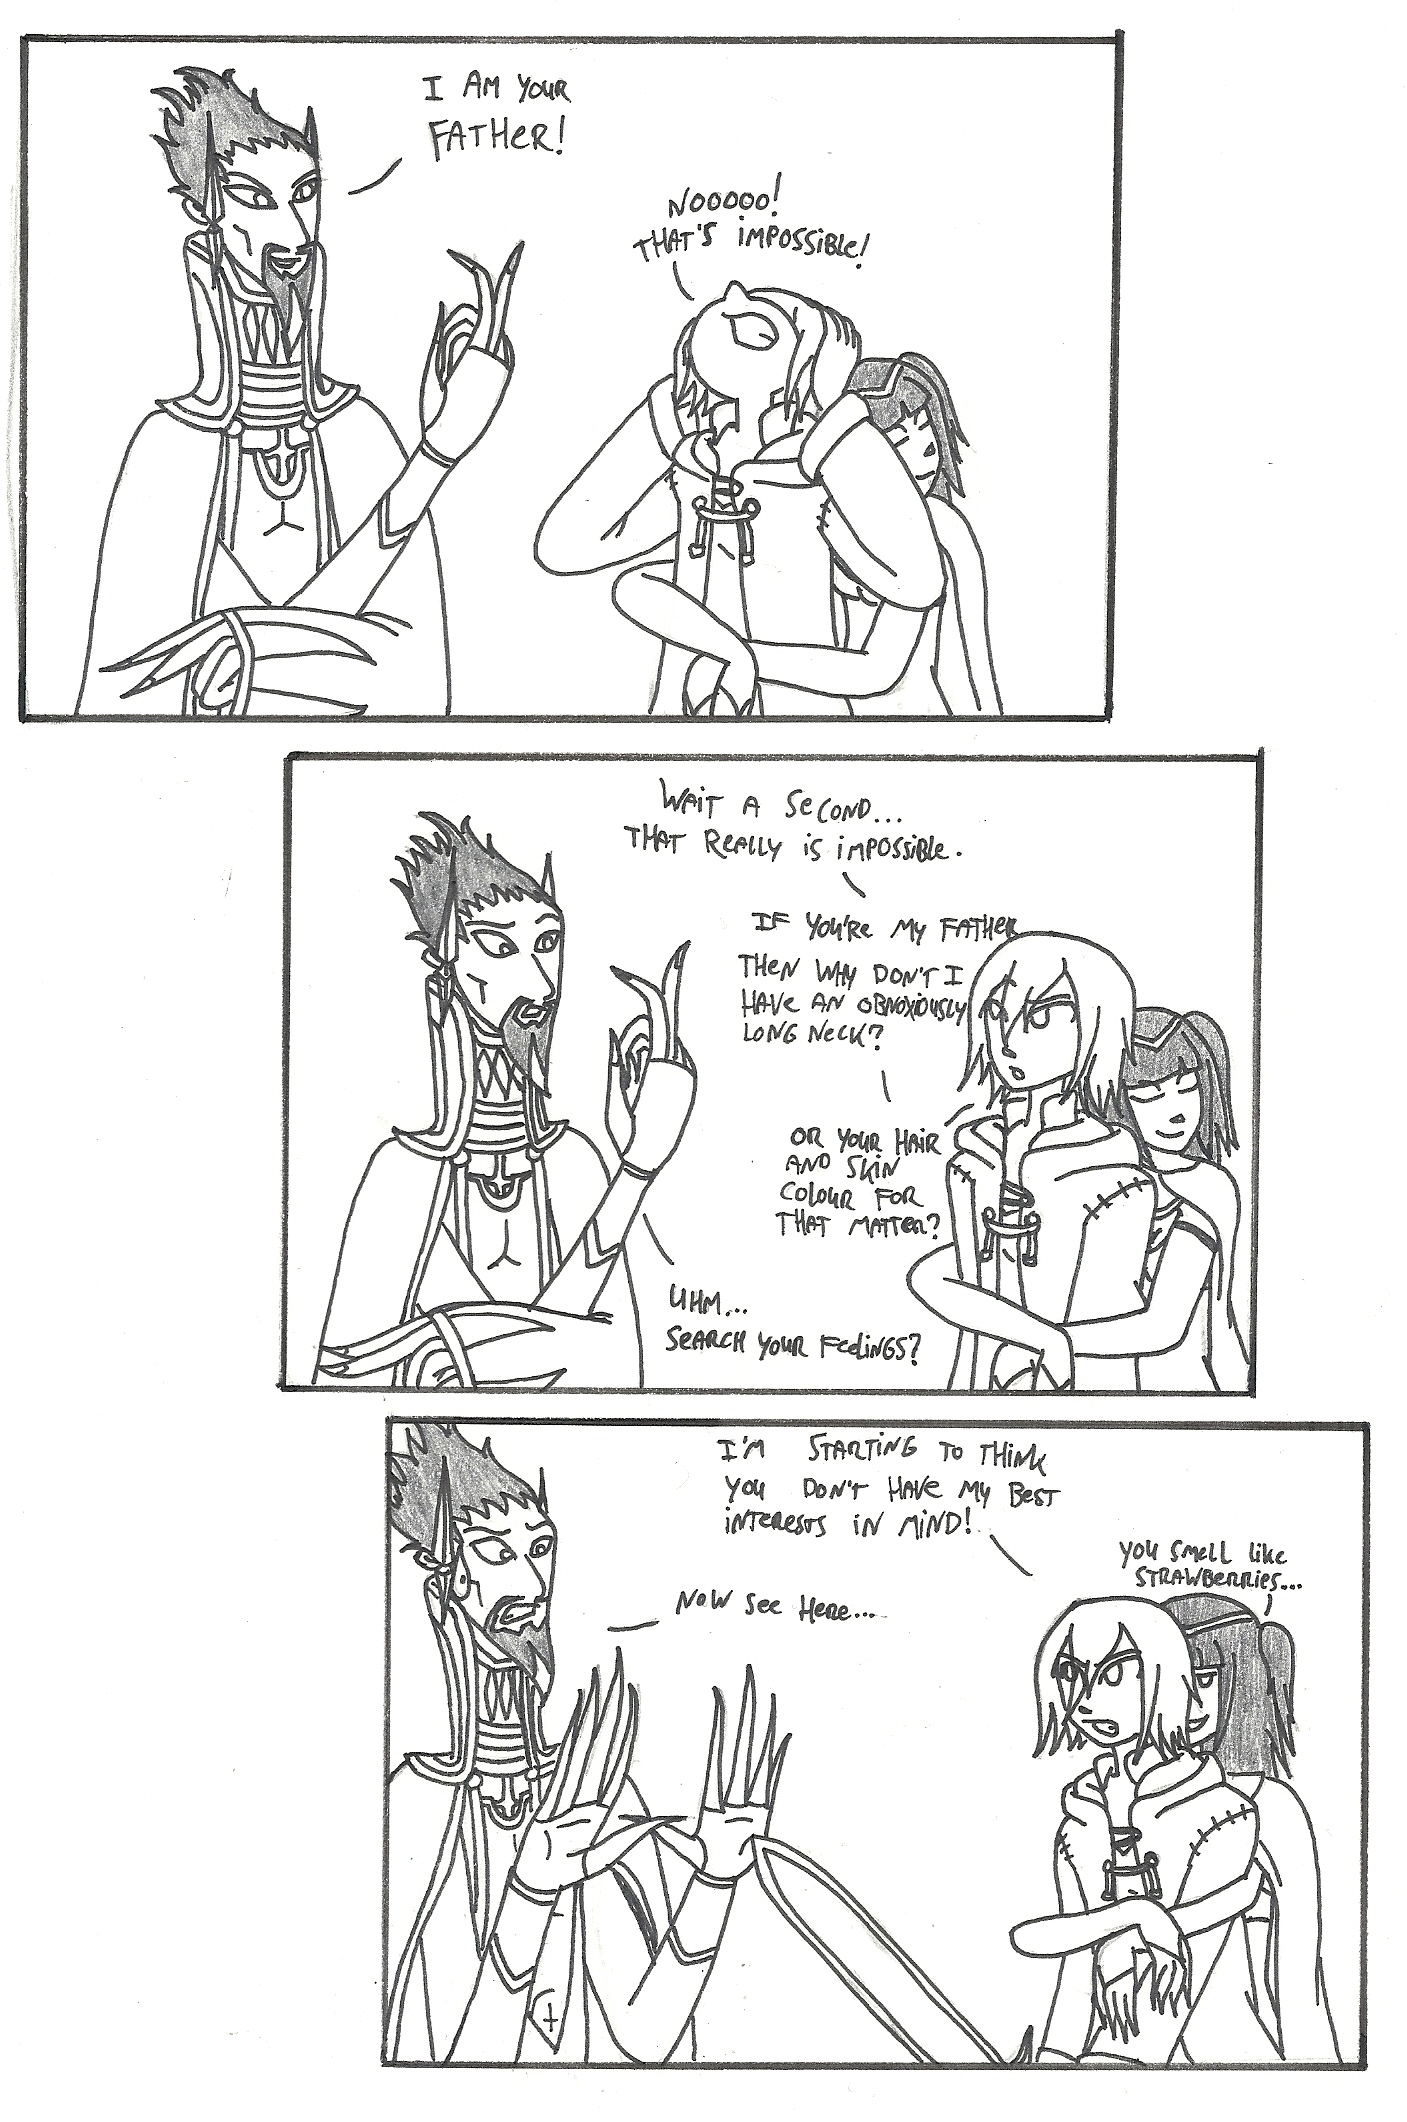 Fire Emblem Awakening chapter 13 (*Some Spoilers*) by misterj02